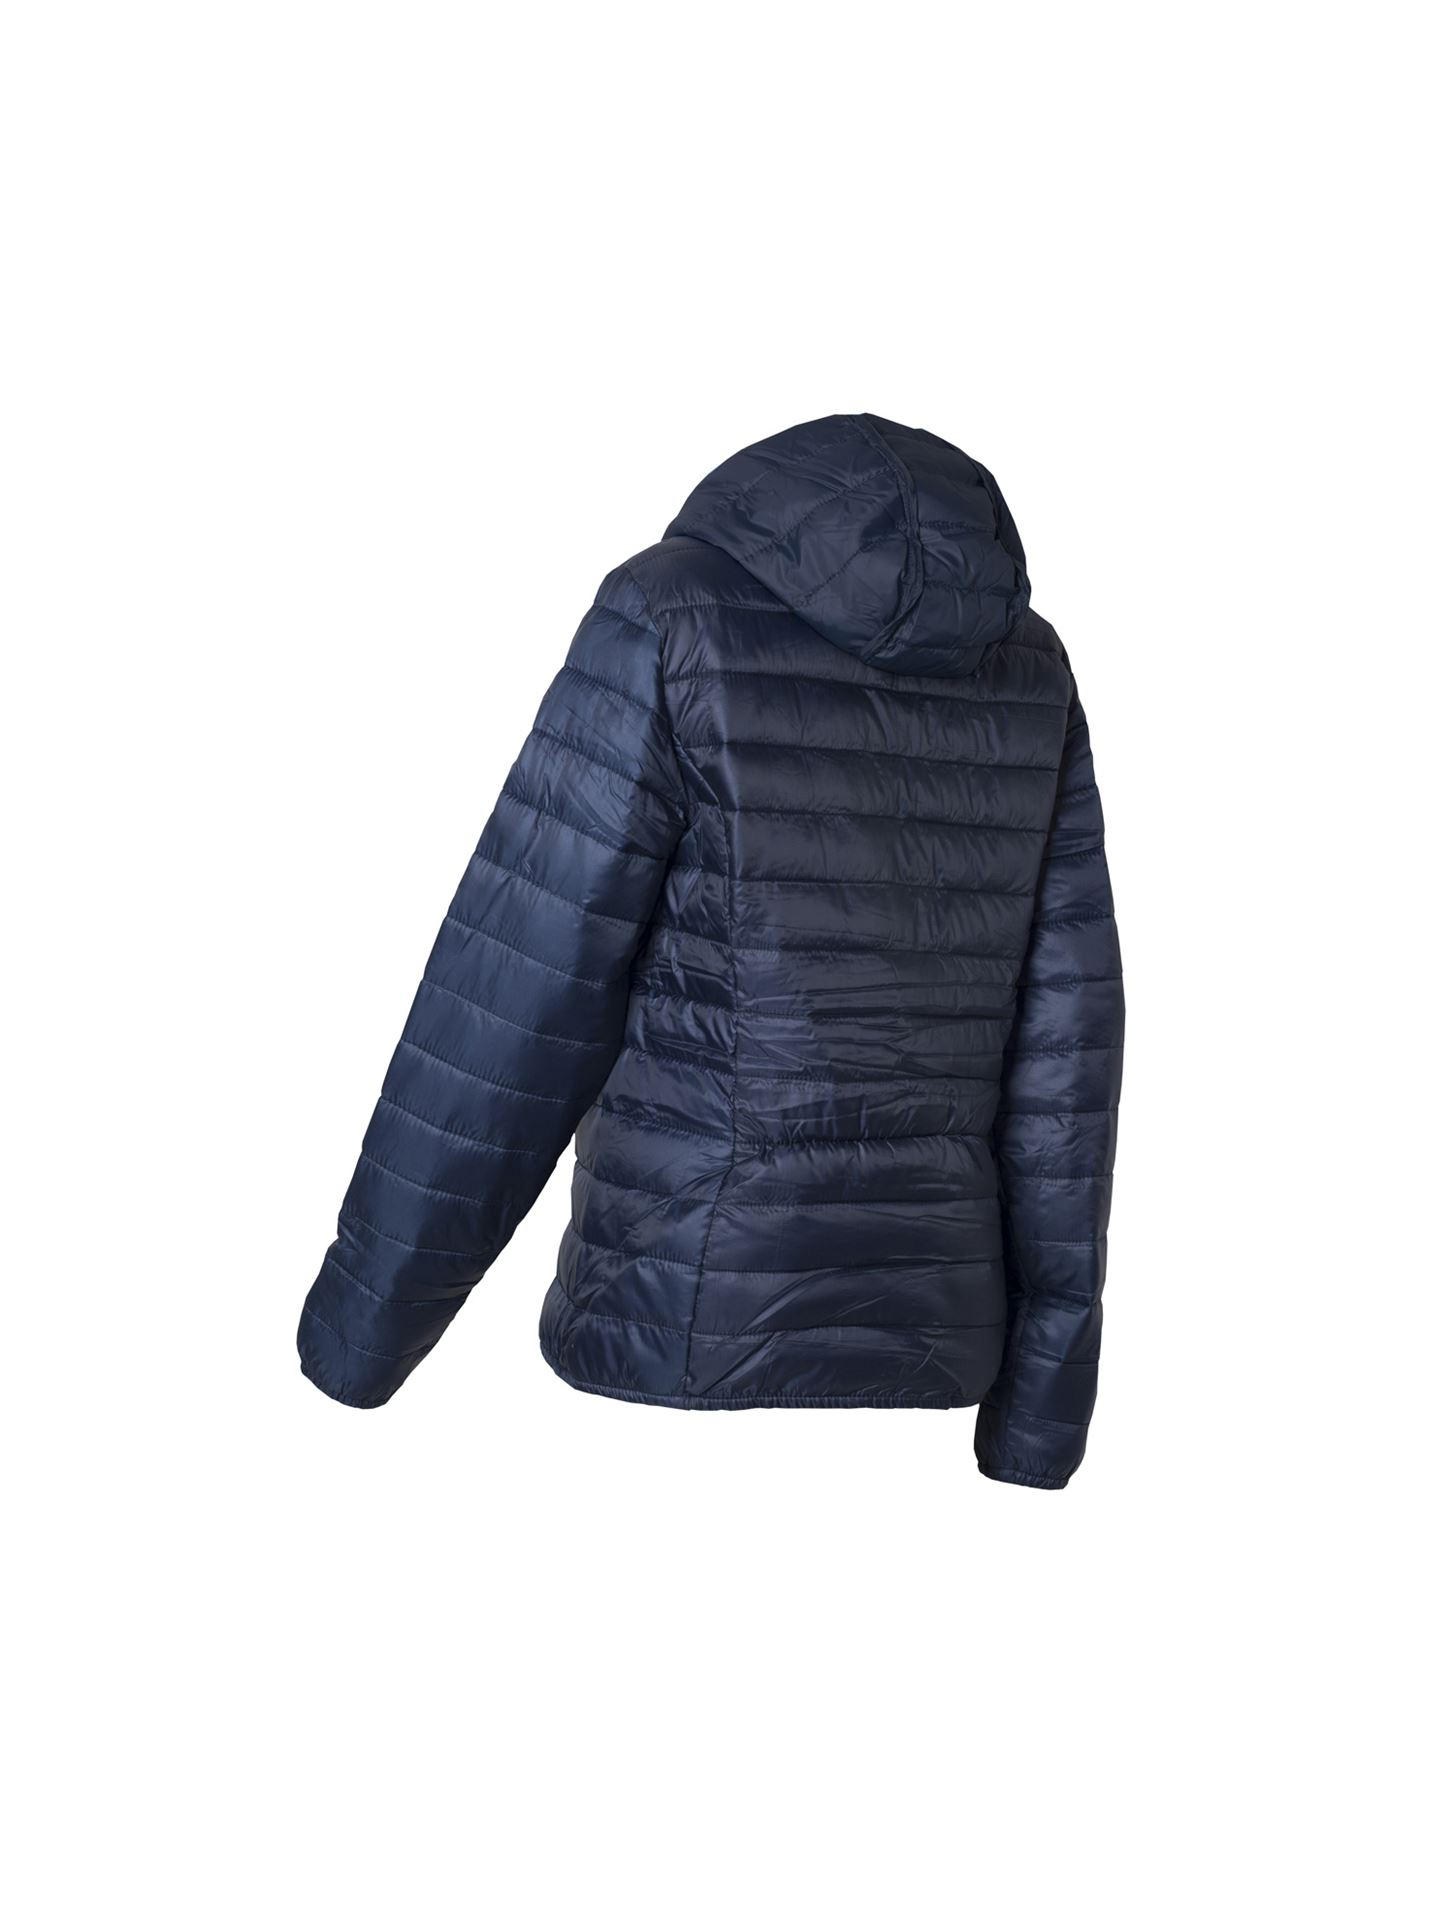 a55cb9a7bccb4 Iveco Fanshop. Women's padded jacket with hood